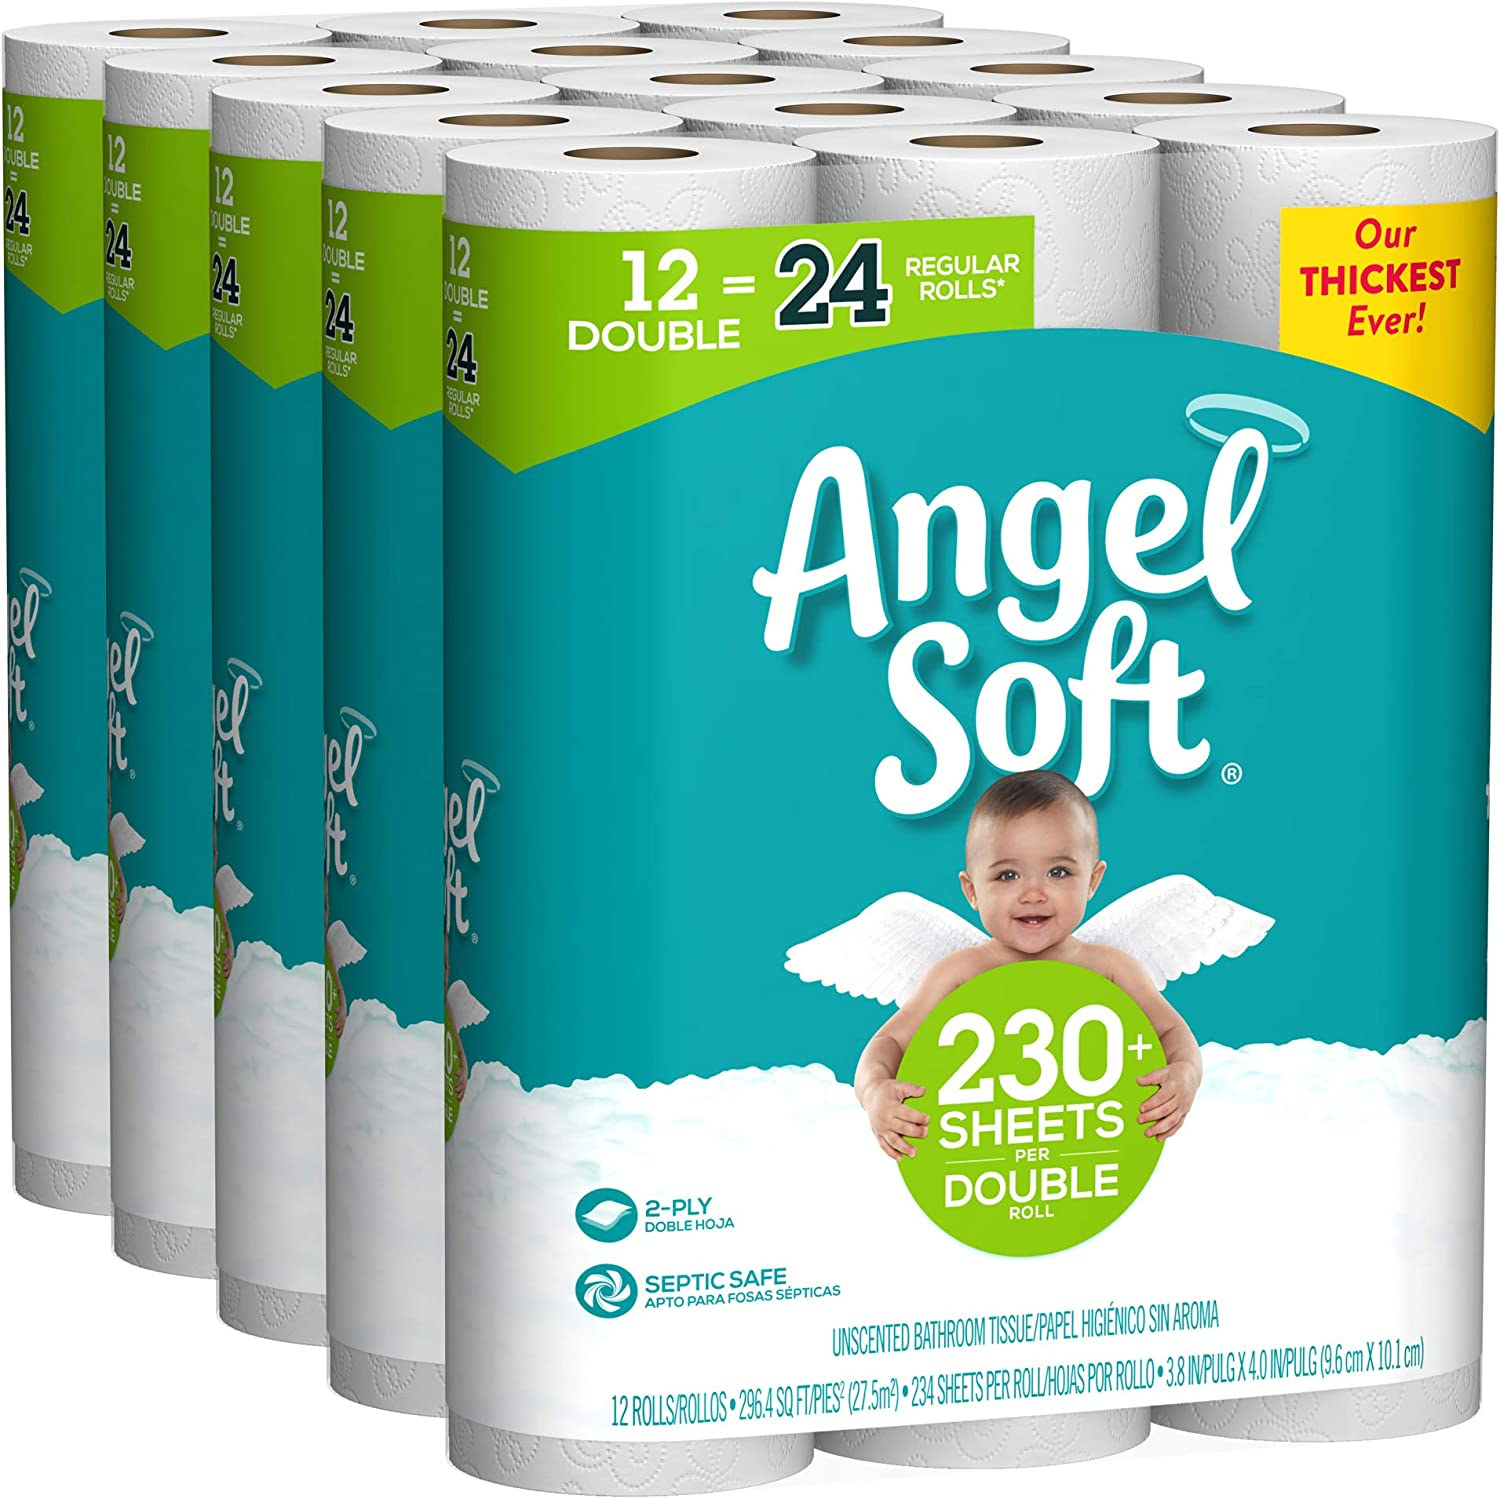 Angel Soft Toilet Paper, 60 Double Rolls, 60 = 120 Regular Rolls, Bath Tissue, 5 Packs of 12 Rolls